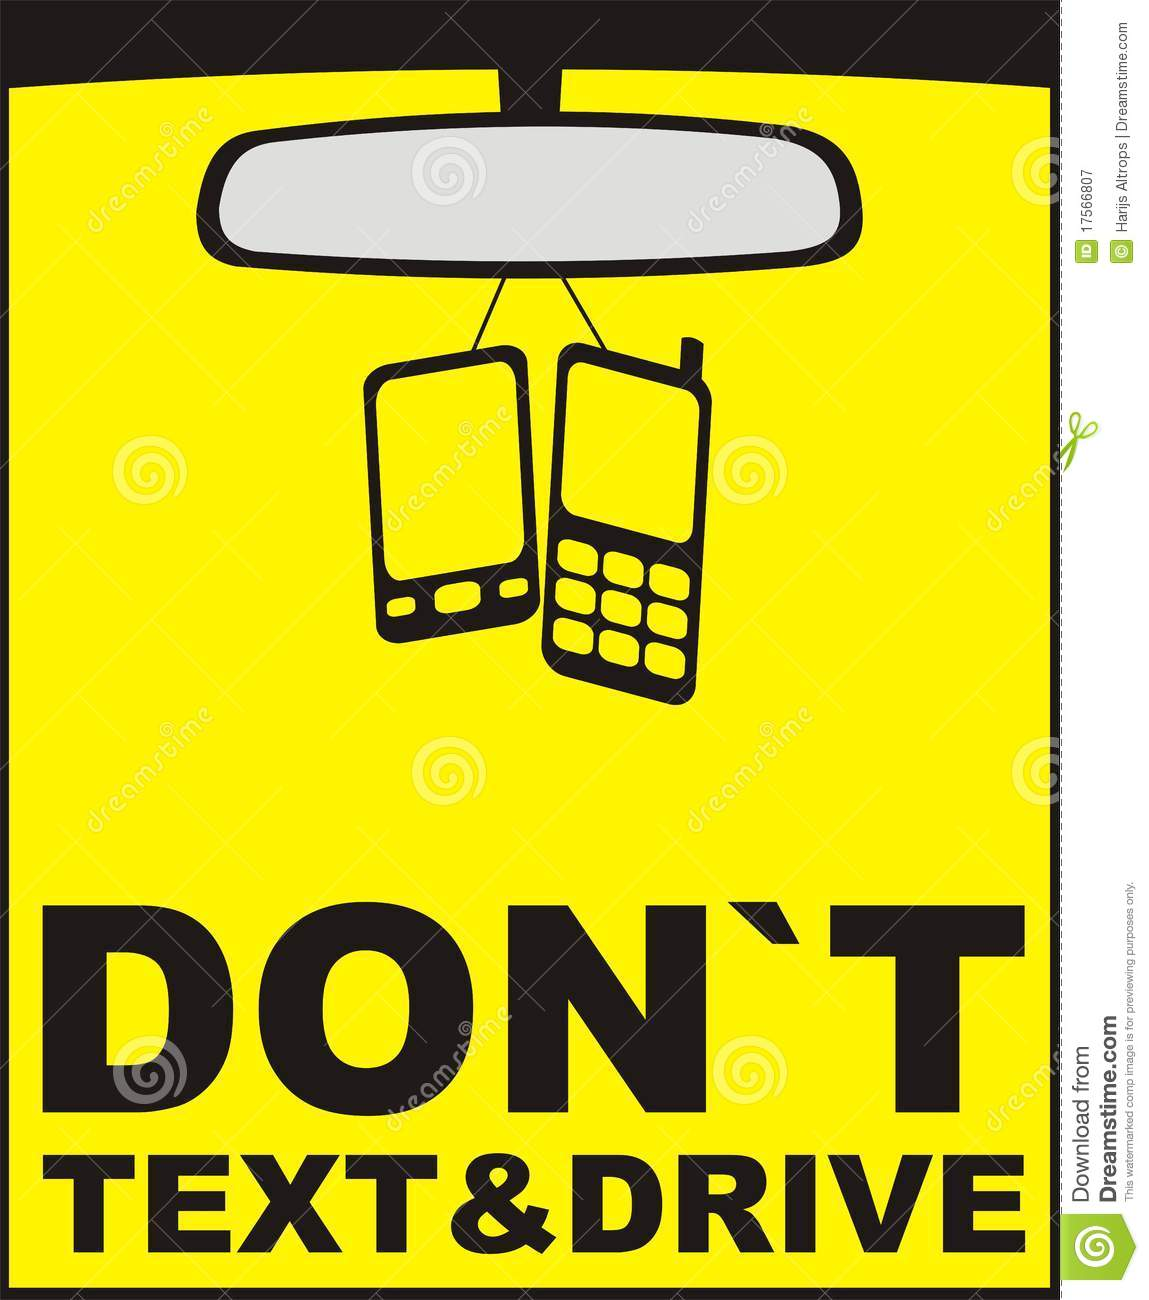 don t text and drive Get help on 【 don't text and drive essay 】 on graduateway ✅ huge assortment of free essays & assignments ✅ the best writers i can't wait to hang out tonight we are going to have so much fun yeah that would be a normal text message that an everyday person would send.